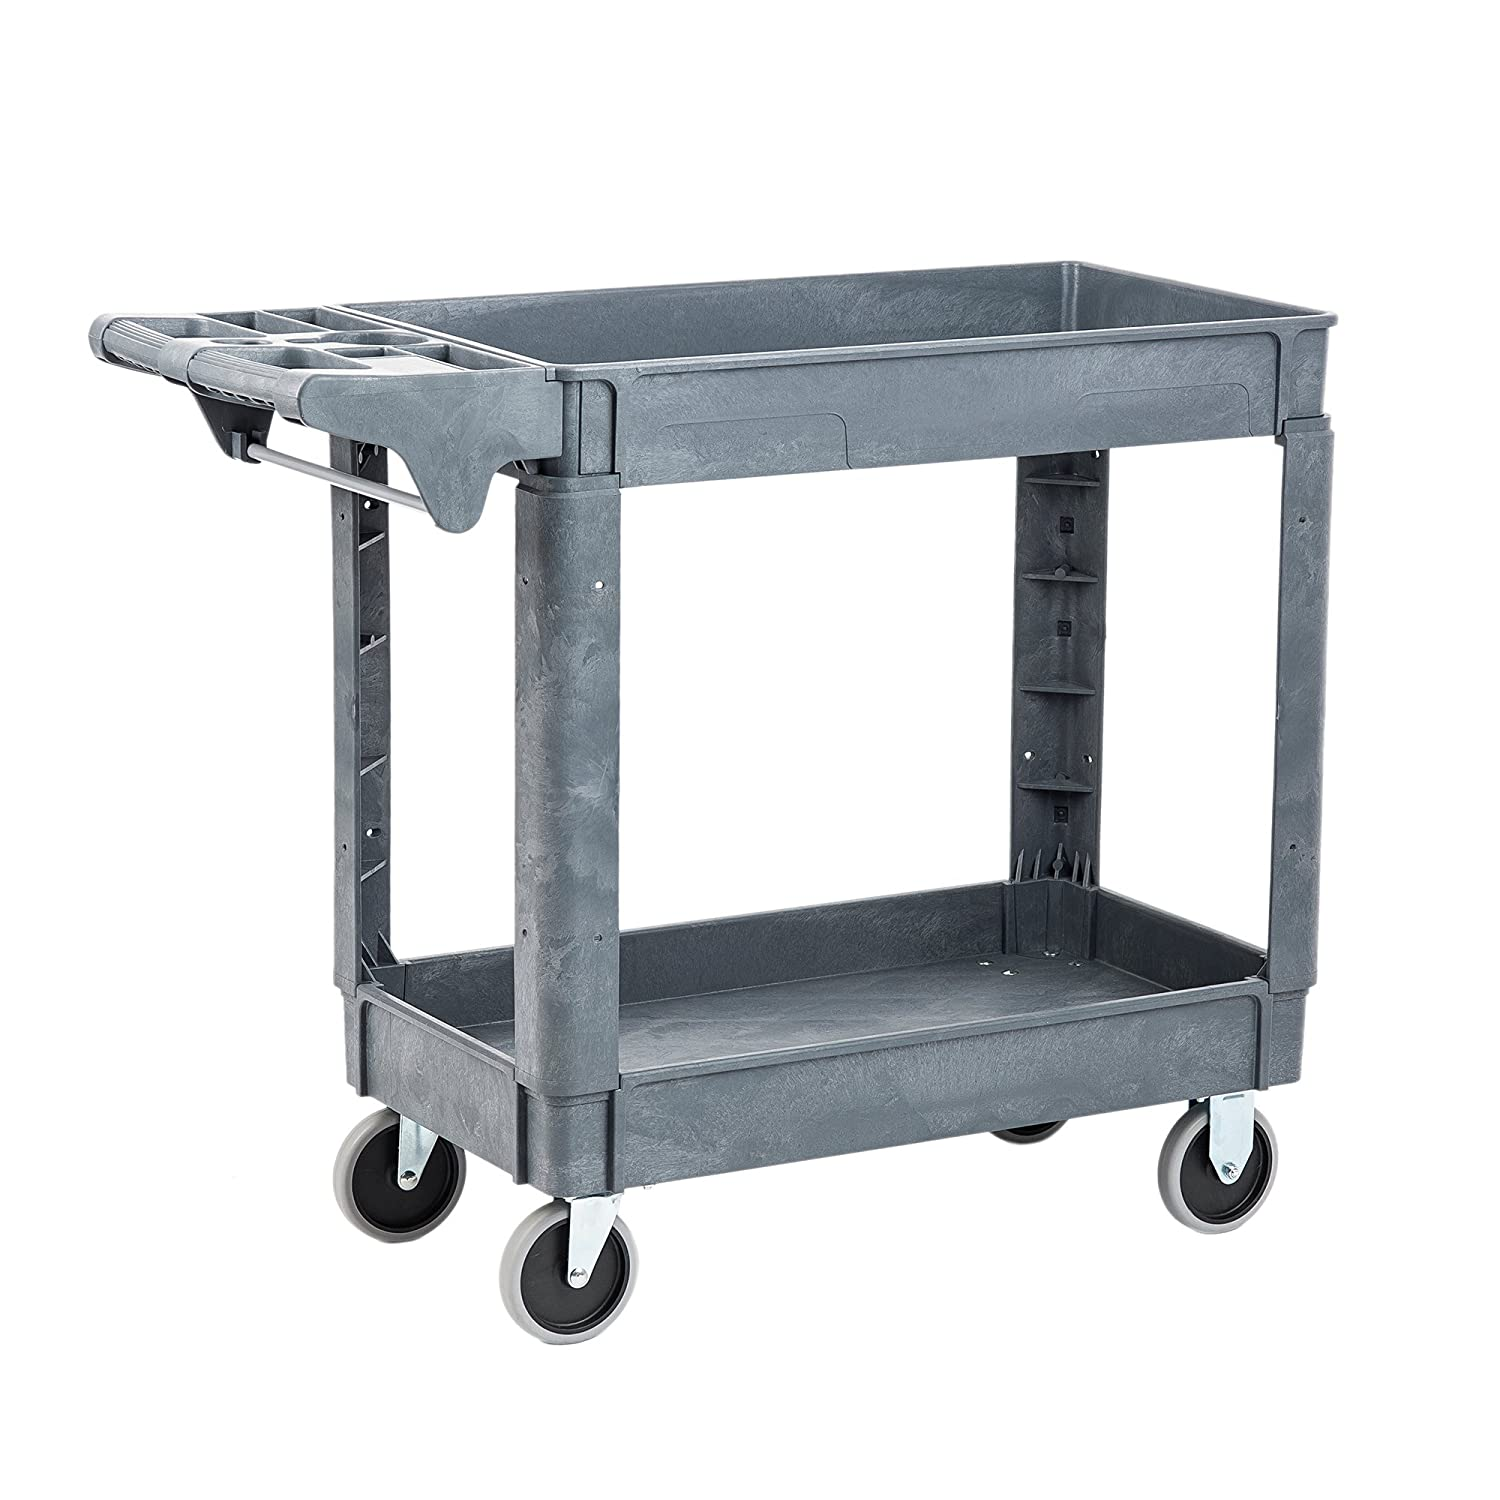 Pearington Utility Rolling Cart- Multi Purpose, Heavy Duty Service Cart Supplies Storage and Organizer 2 Tier with Wheels- 500lb Loading Capacity, Gray